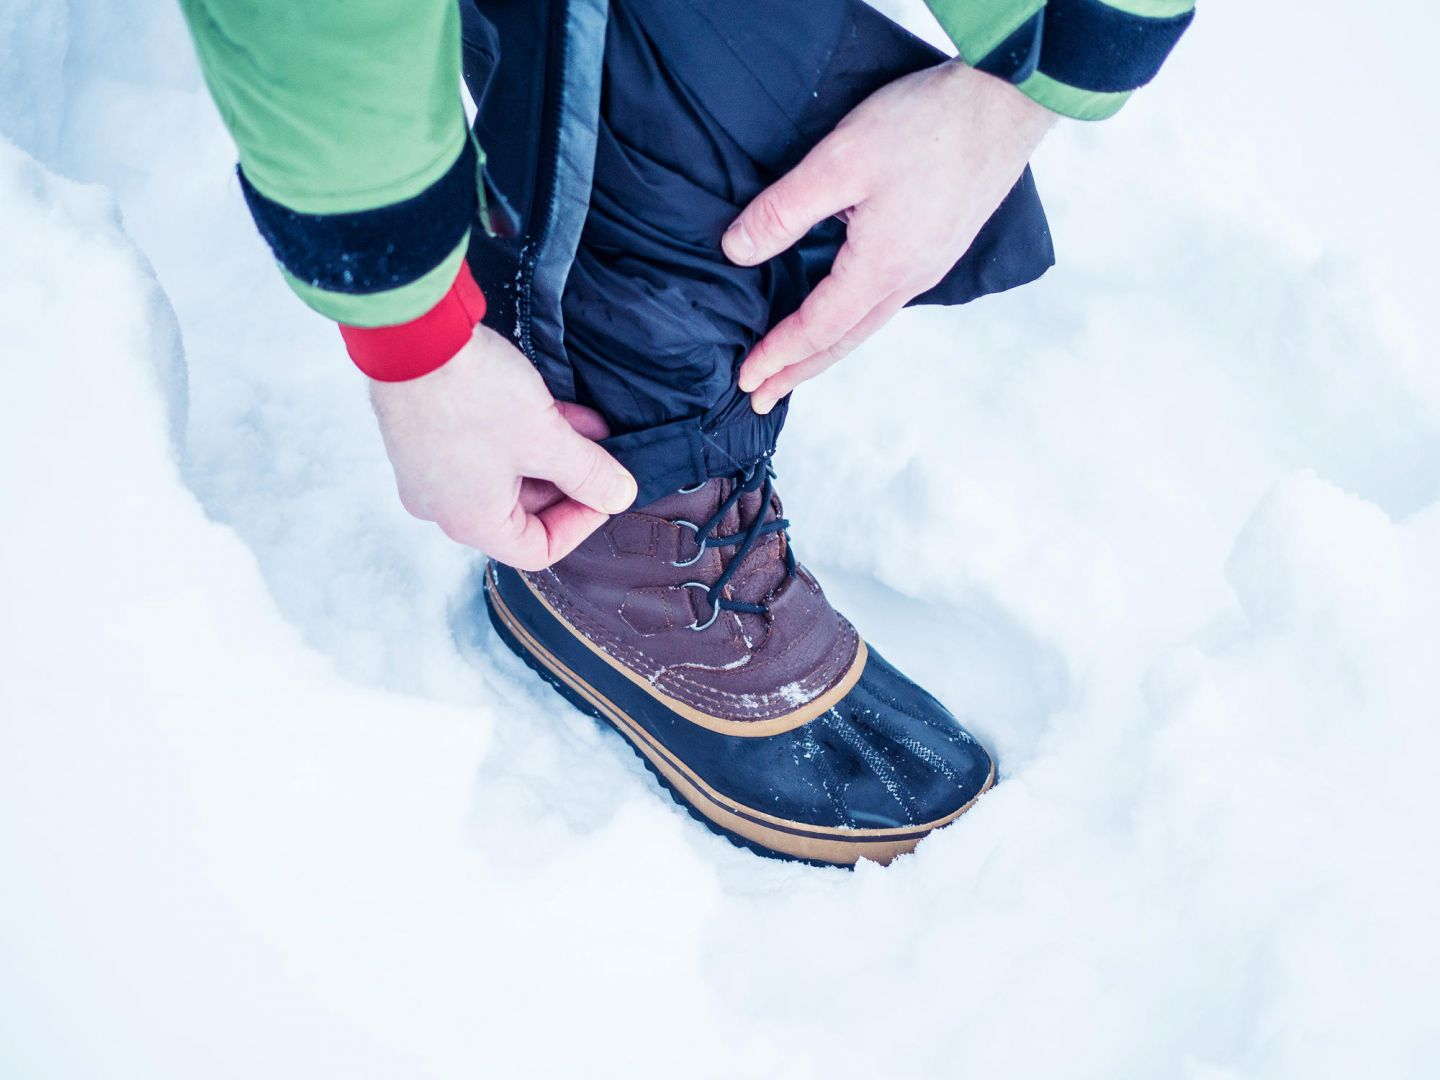 Winter pants cover your boots